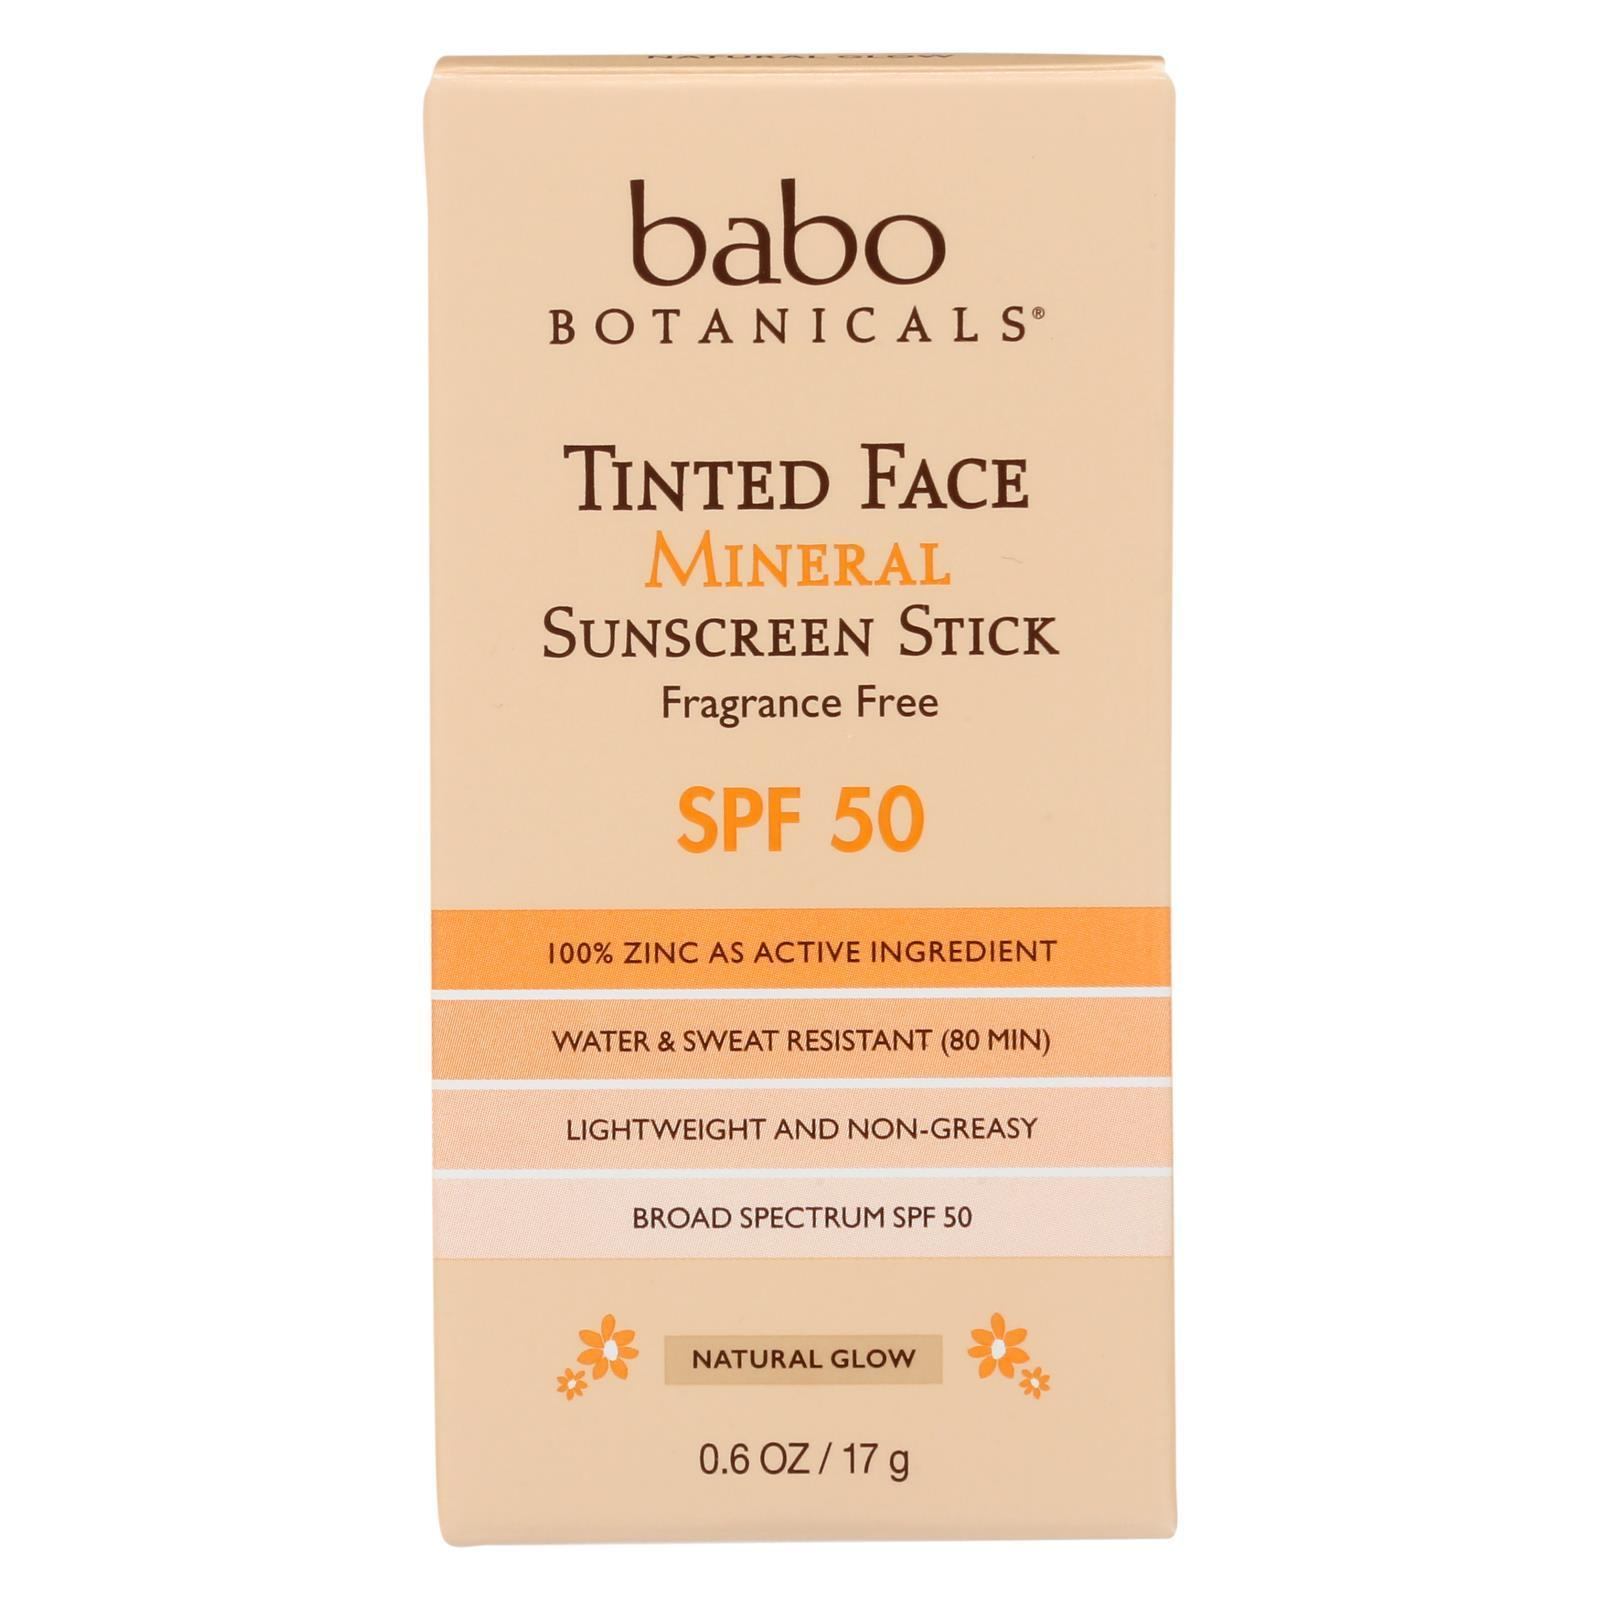 Babo Botanicals Tinted Face Mineral Sunscreen Stick Spf 50 Case Of 6 0 6 Oz In 2020 Babo Botanicals Sunscreen Stick Mineral Sunscreen